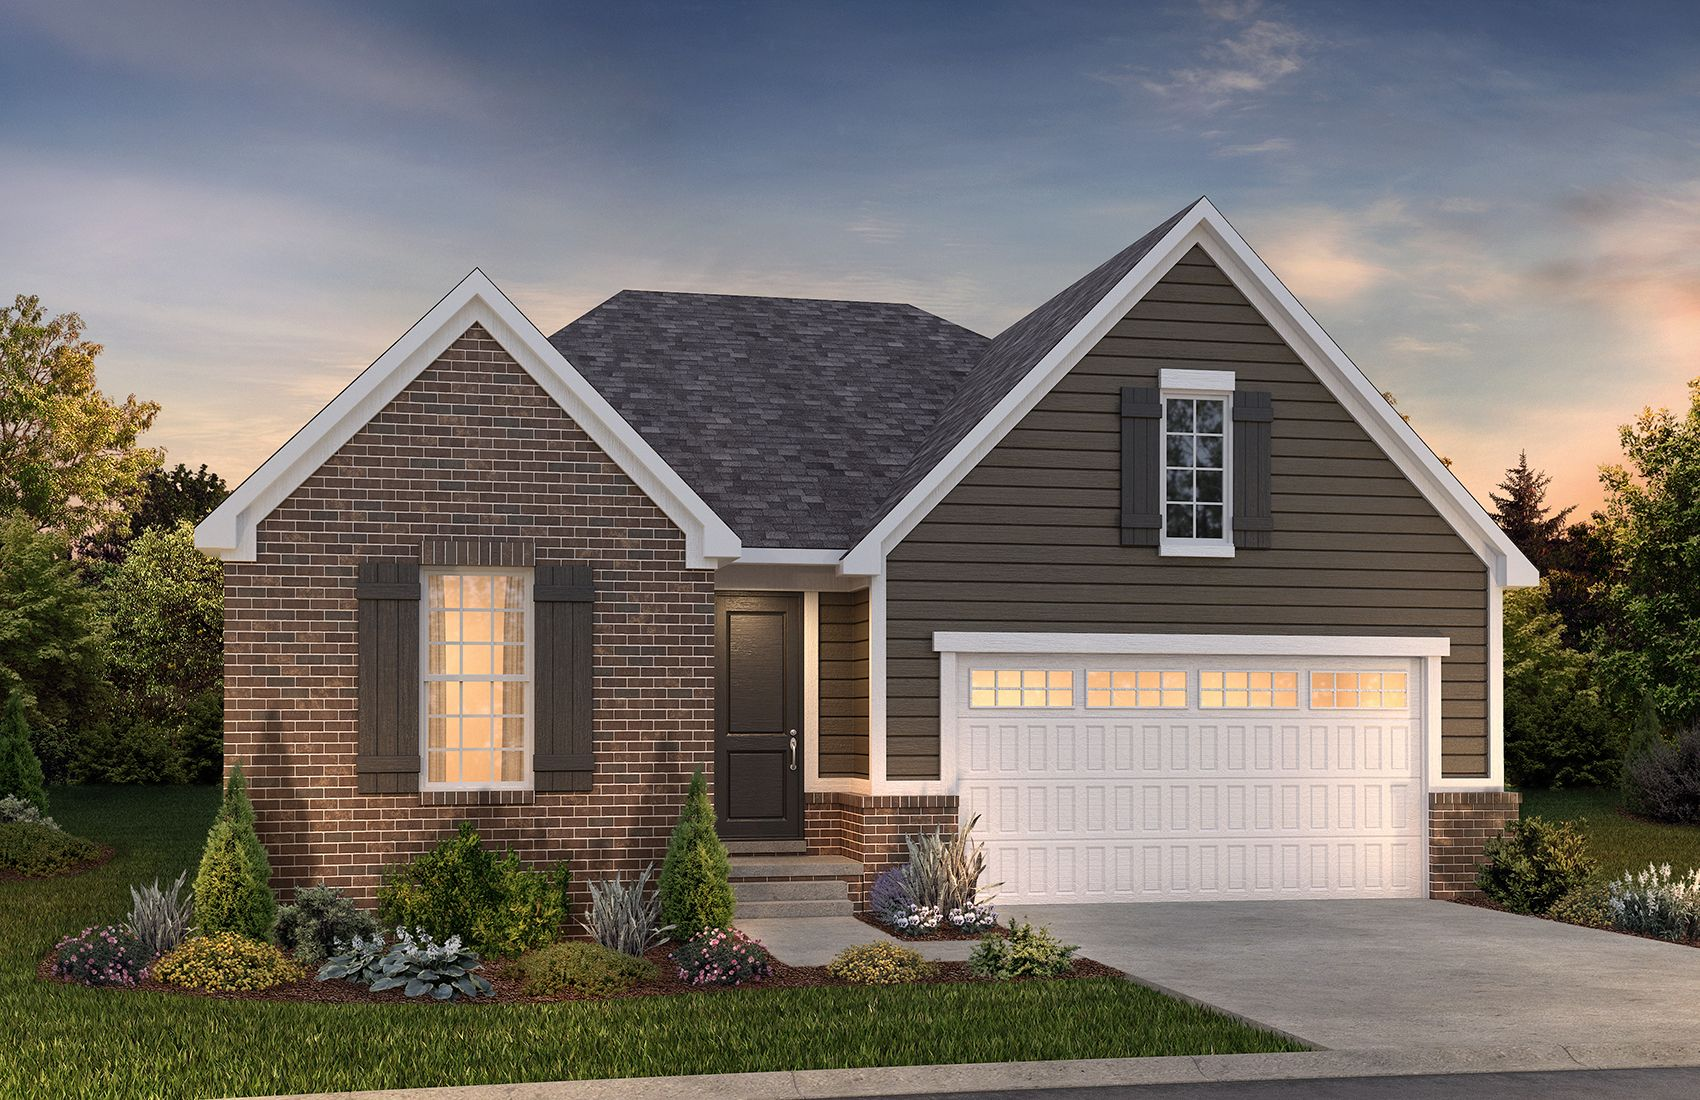 Exterior Rendering of Ranch Home:Raleigh  D